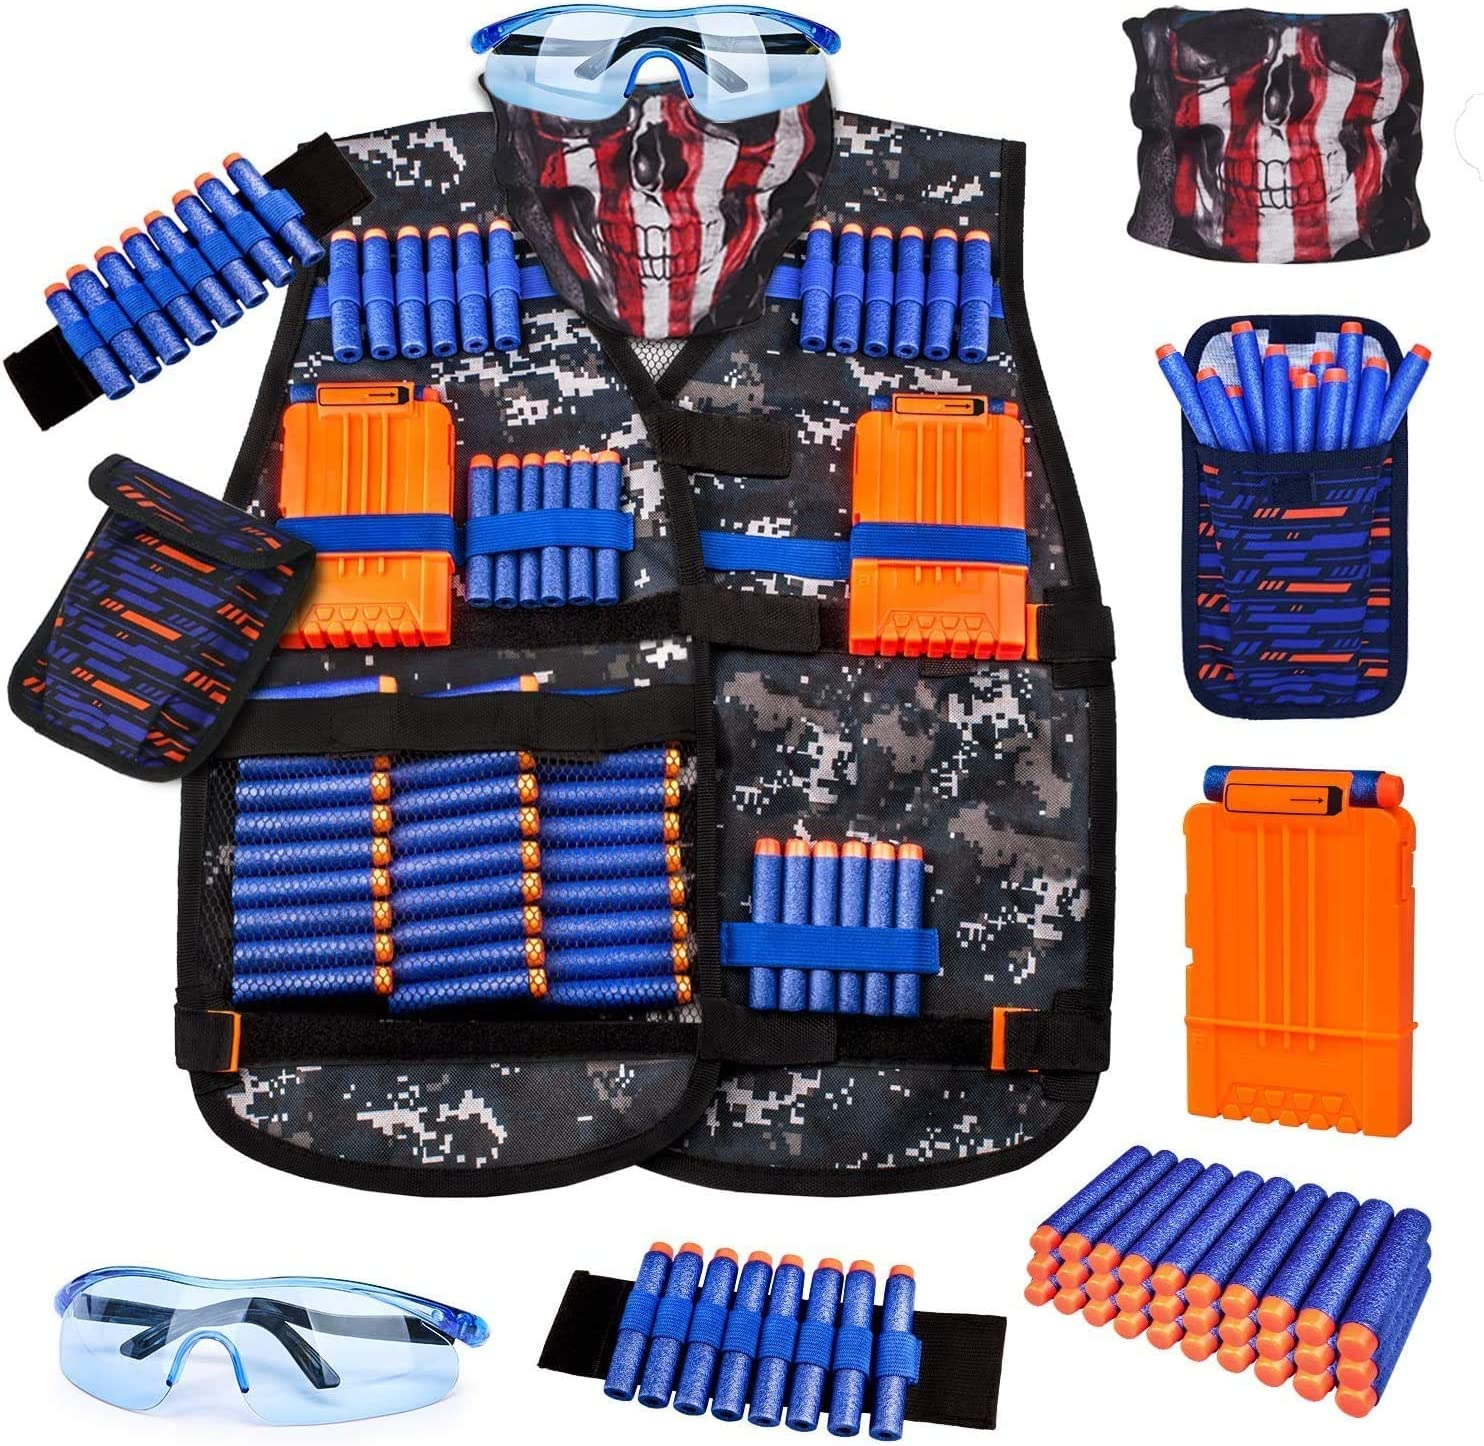 Kids Tactical Vest Kit for Nerf Guns Series with Refill Darts,Dart Pouch, Reload Clips, Tactical Mask, Wrist Band and Protective Glasses,Nerf Vest Toys for 4 5 6 7 8 9 10 11 12 Year Boys